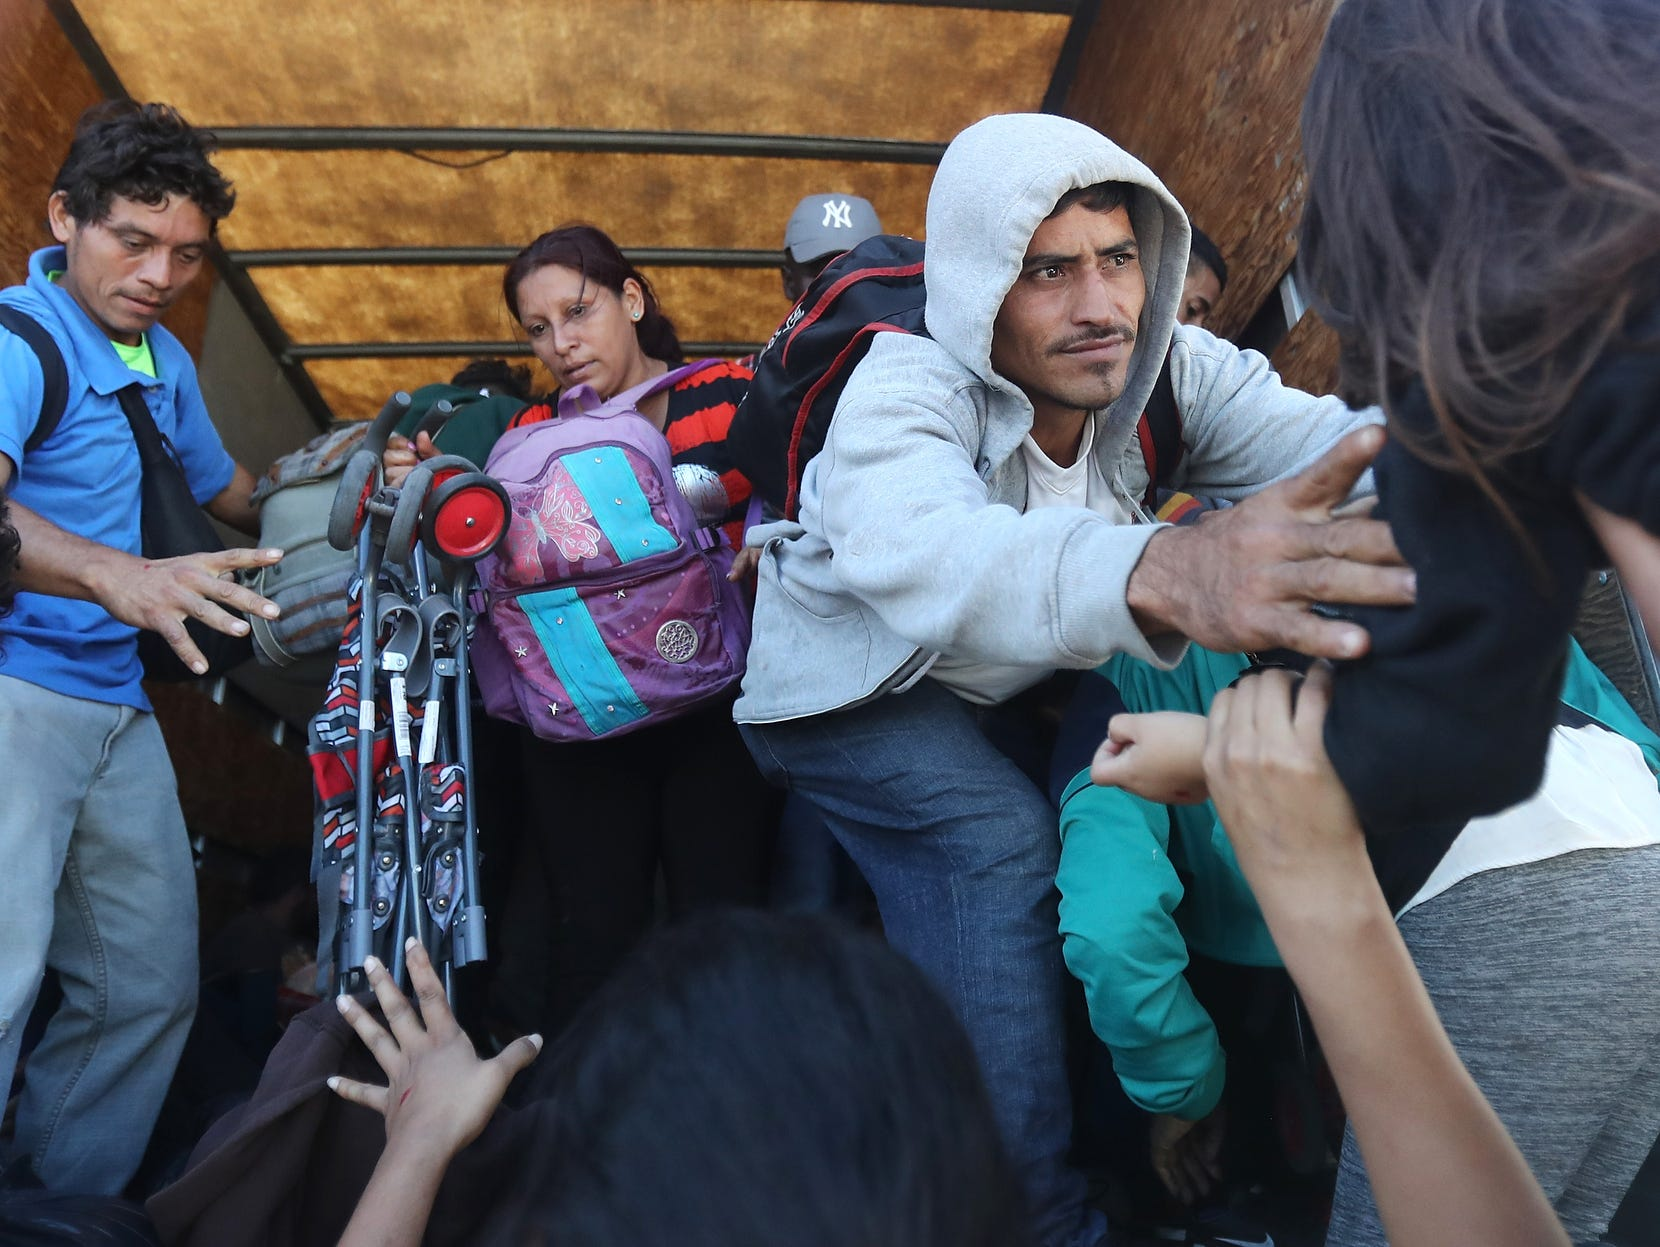 Honduran migrants from the new 'migrant caravan' climb onto the back of a truck that will drive them toward the Mexican border on Jan.17, 2019 in Guatemala City, Guatemala. A local business owner donated two trucks for migrants, saying he did so for 'the love of God'. More than one thousand Hondurans have set off toward the United States on foot or in vehicles in recent days.